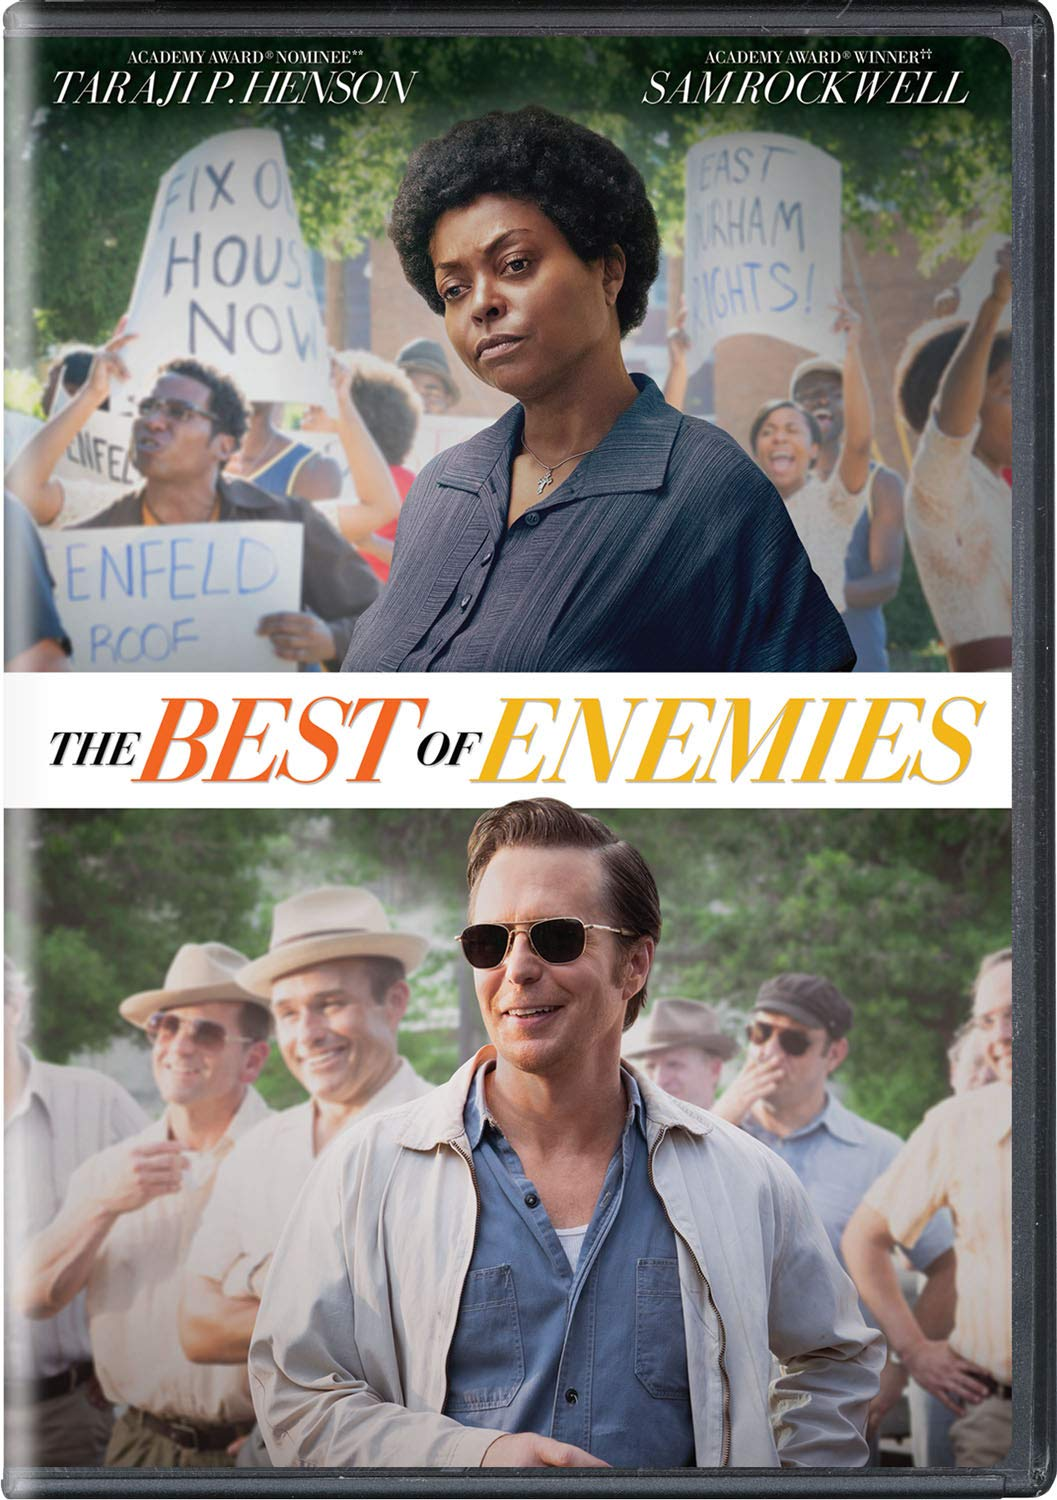 Amazon.com: The Best of Enemies [DVD] : Taraji P. Henson, Sam Rockwell,  Babou Ceesay, Anne Heche, Wes Bentley, Nick Searcy, Bruce McGill, Robin  Bissell, Danny Strong, Fred Bernstein, Matt Berenson, Robin Bissell,